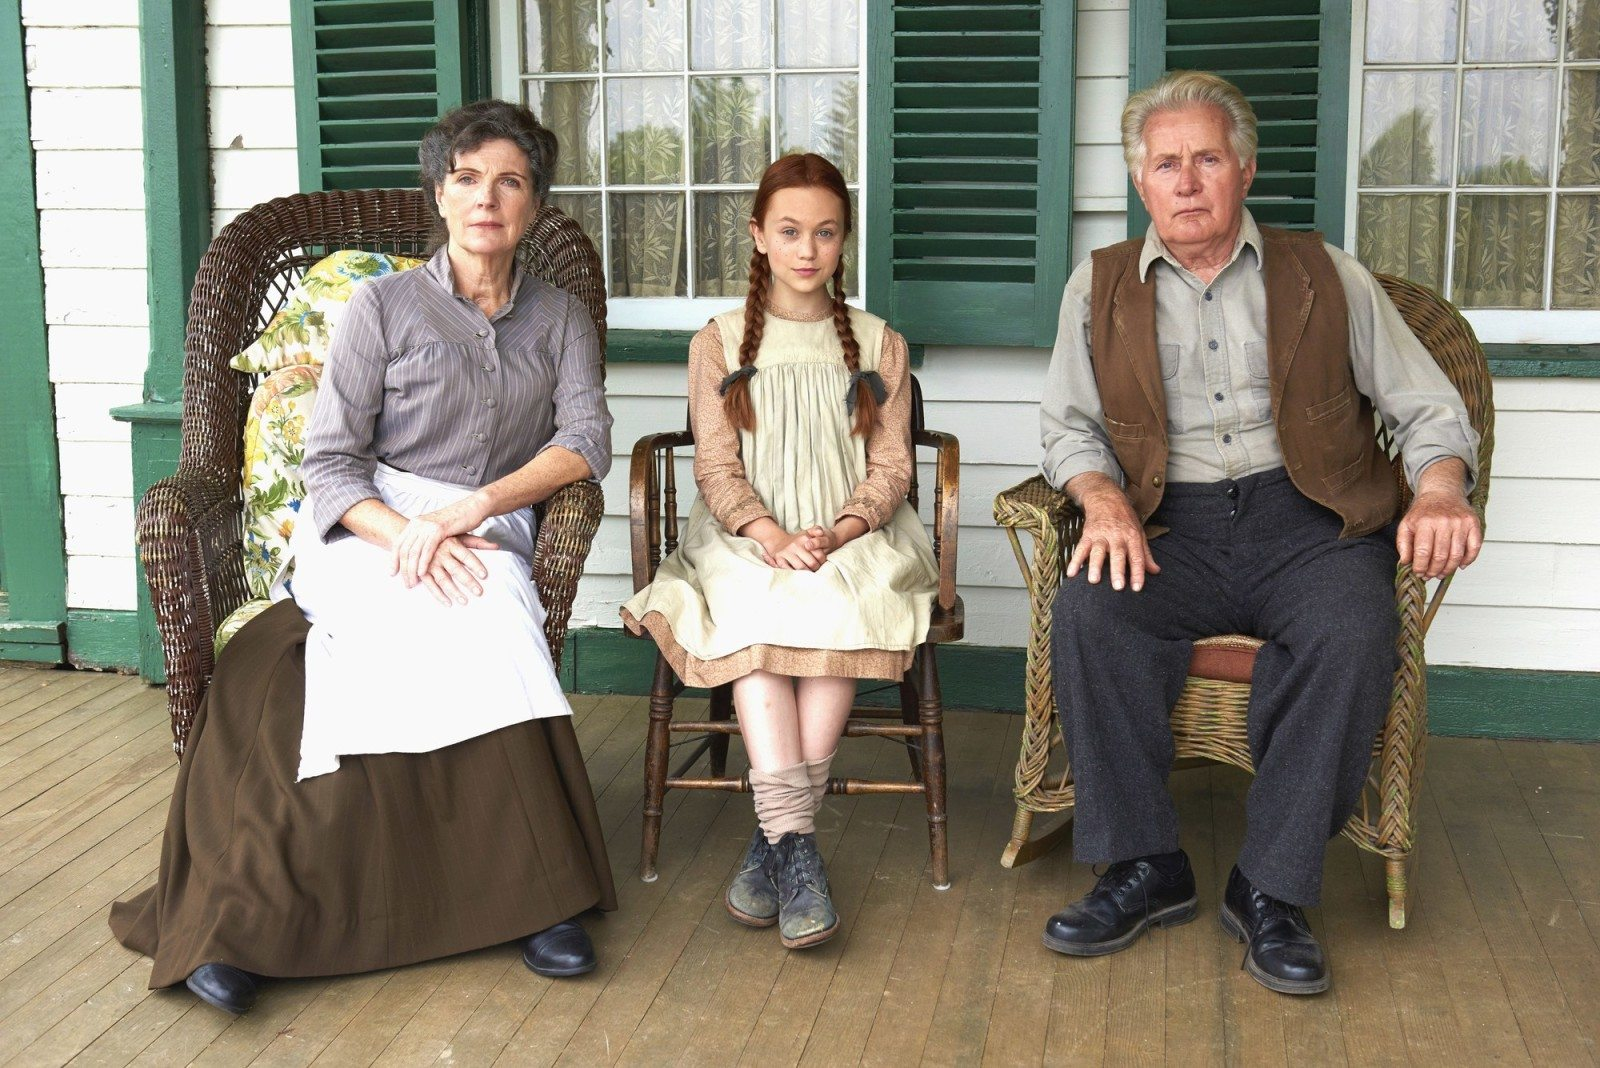 Sara Botsford, Ella Ballentine and Martin Sheen in Lucy Maud Montgomery's Anne of Green Gables (CNW Group/YTV Canada Inc.)